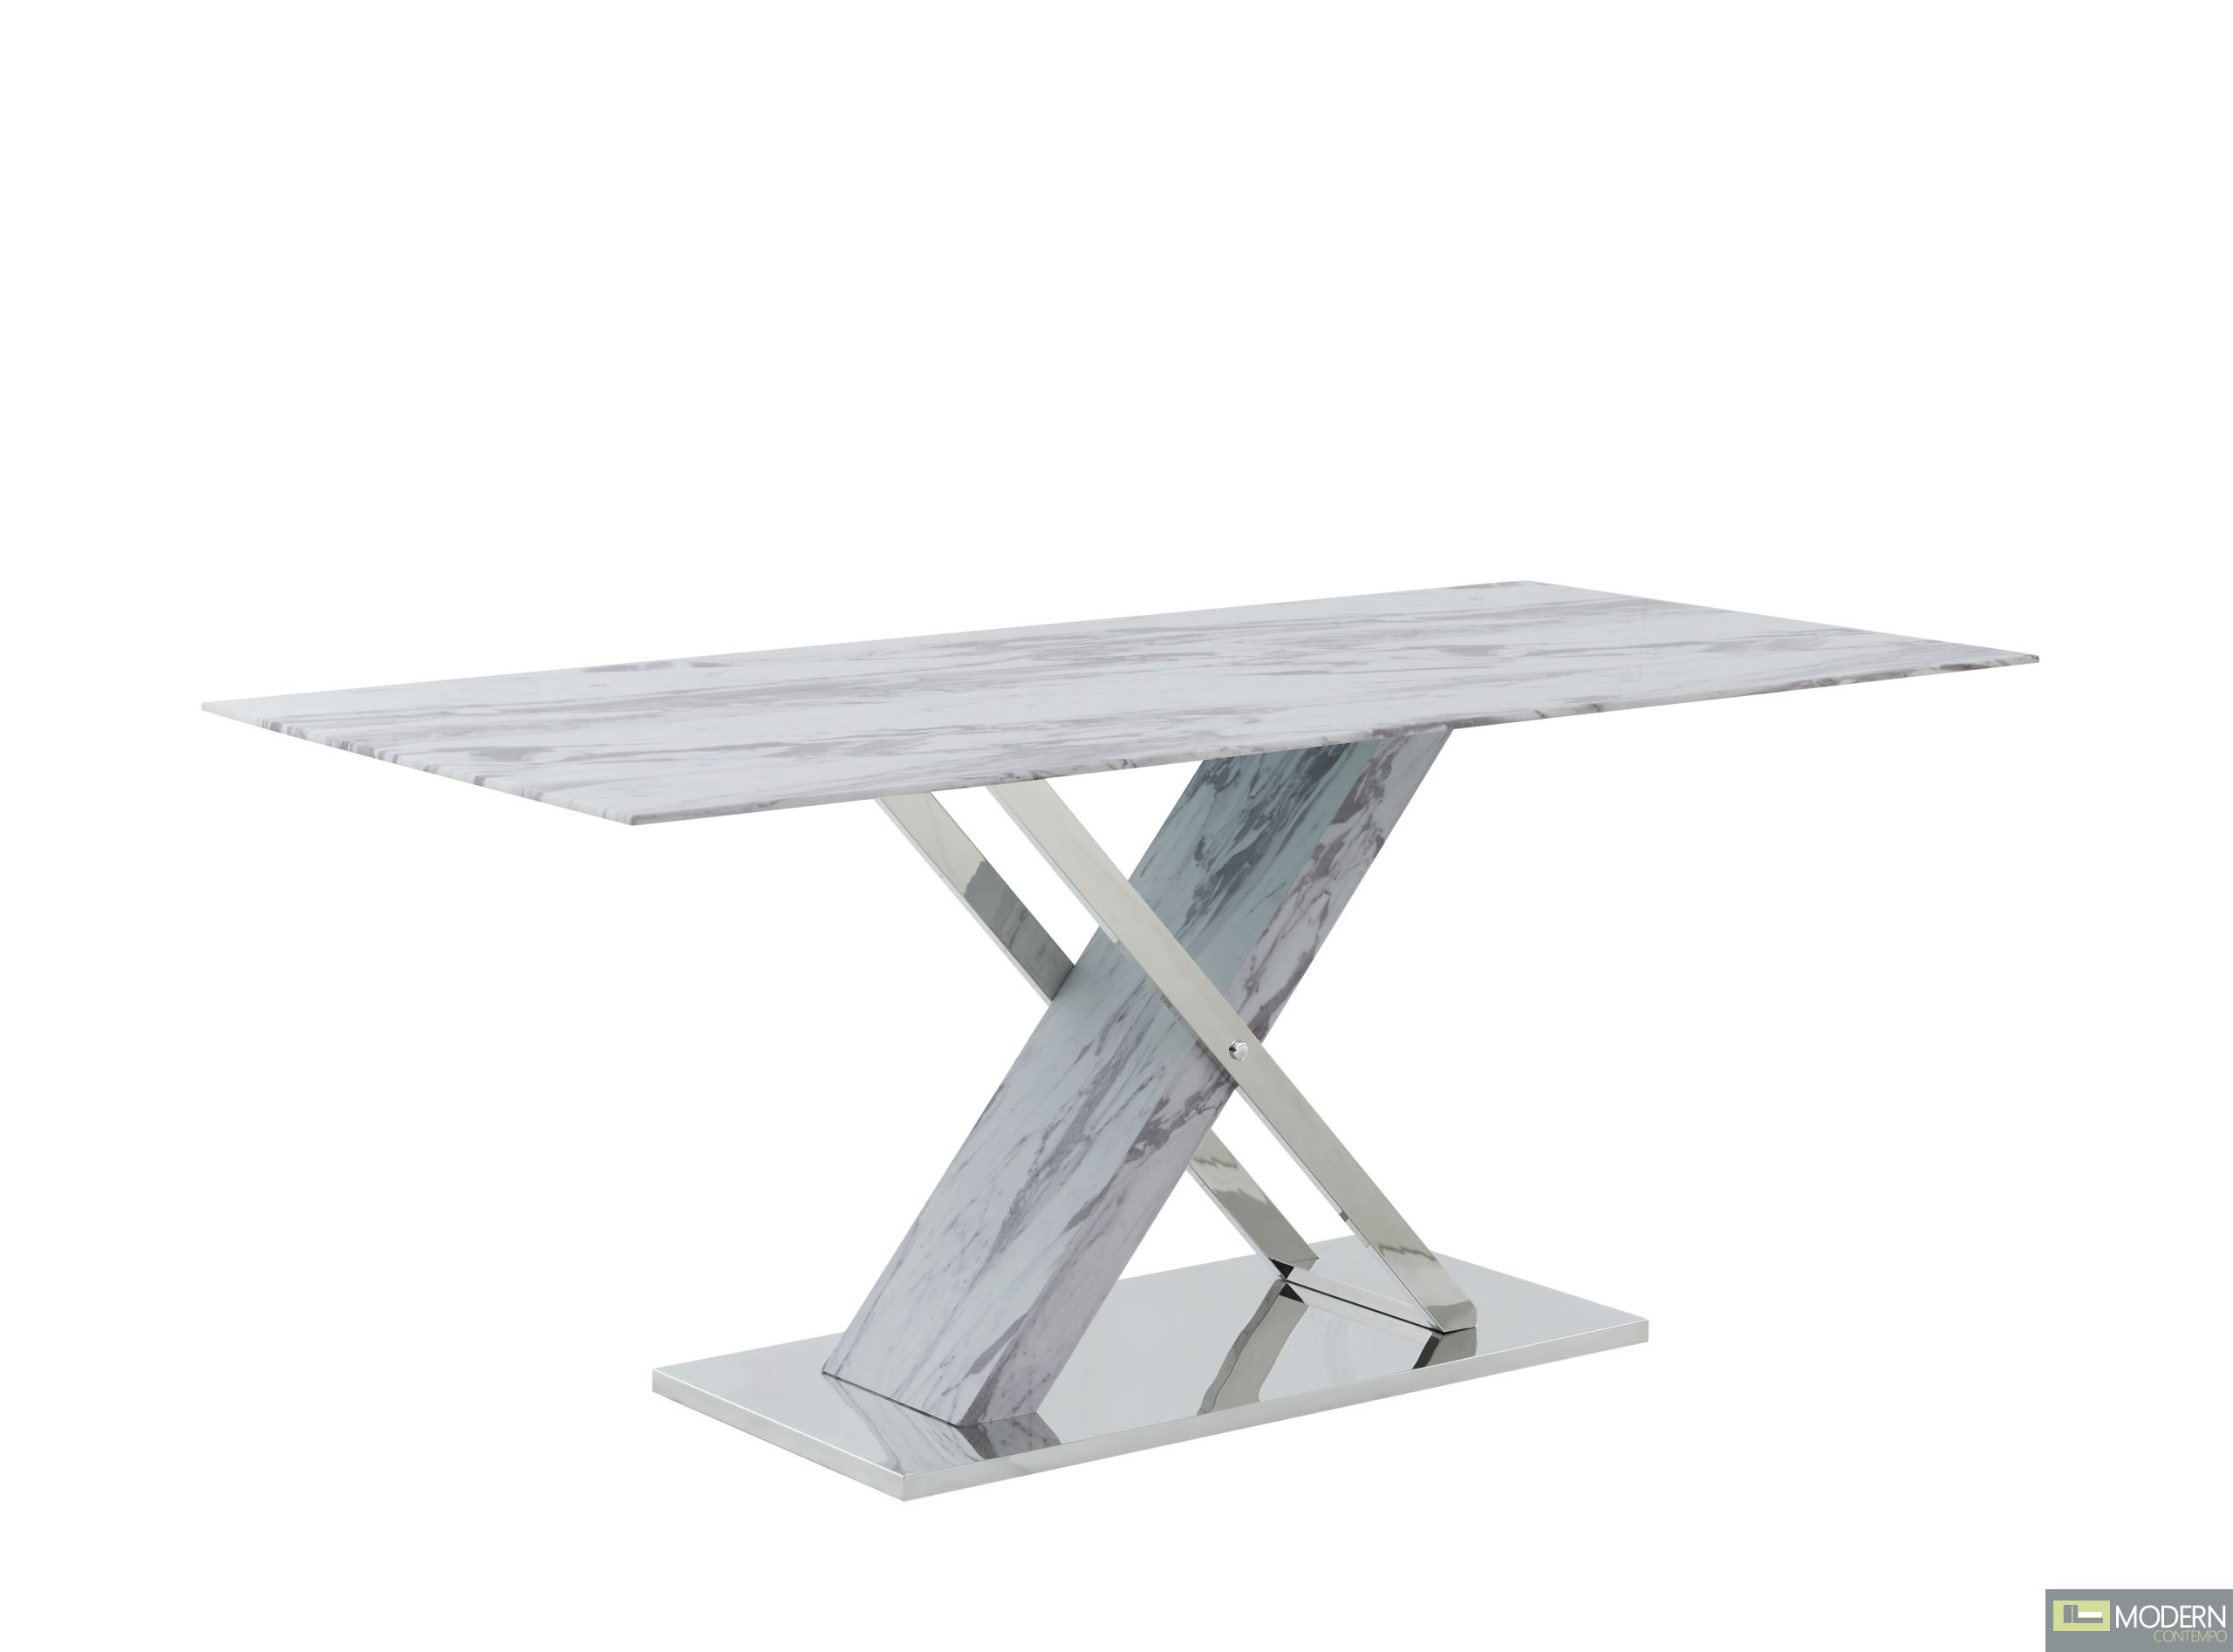 Carrara marble  glass-top dining table With X-base with polished stainless